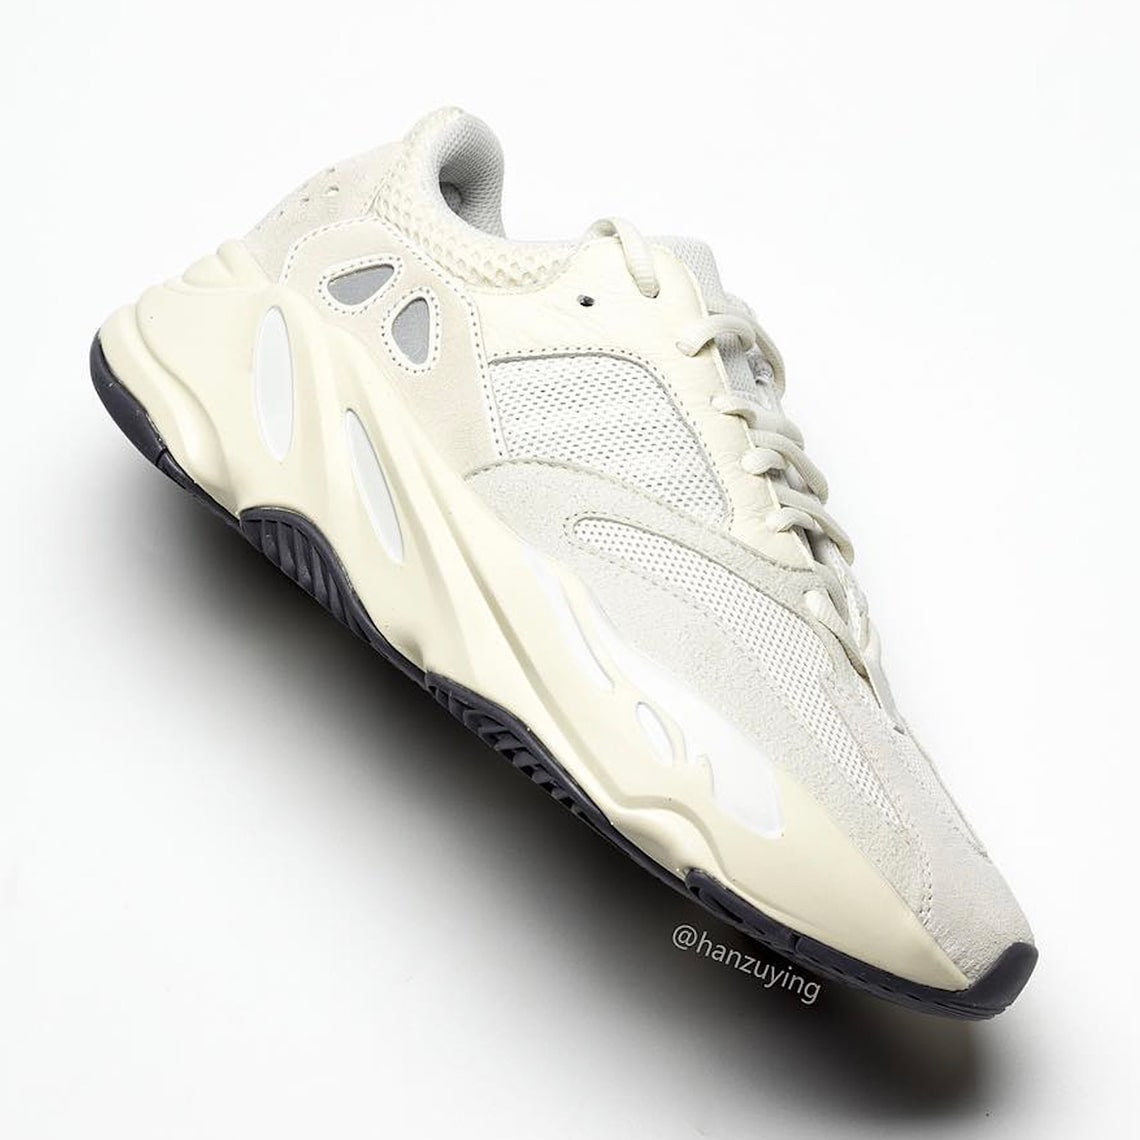 """new style e9f35 d2c9a Where to Buy the adidas YEEZY 700 """"Analog"""